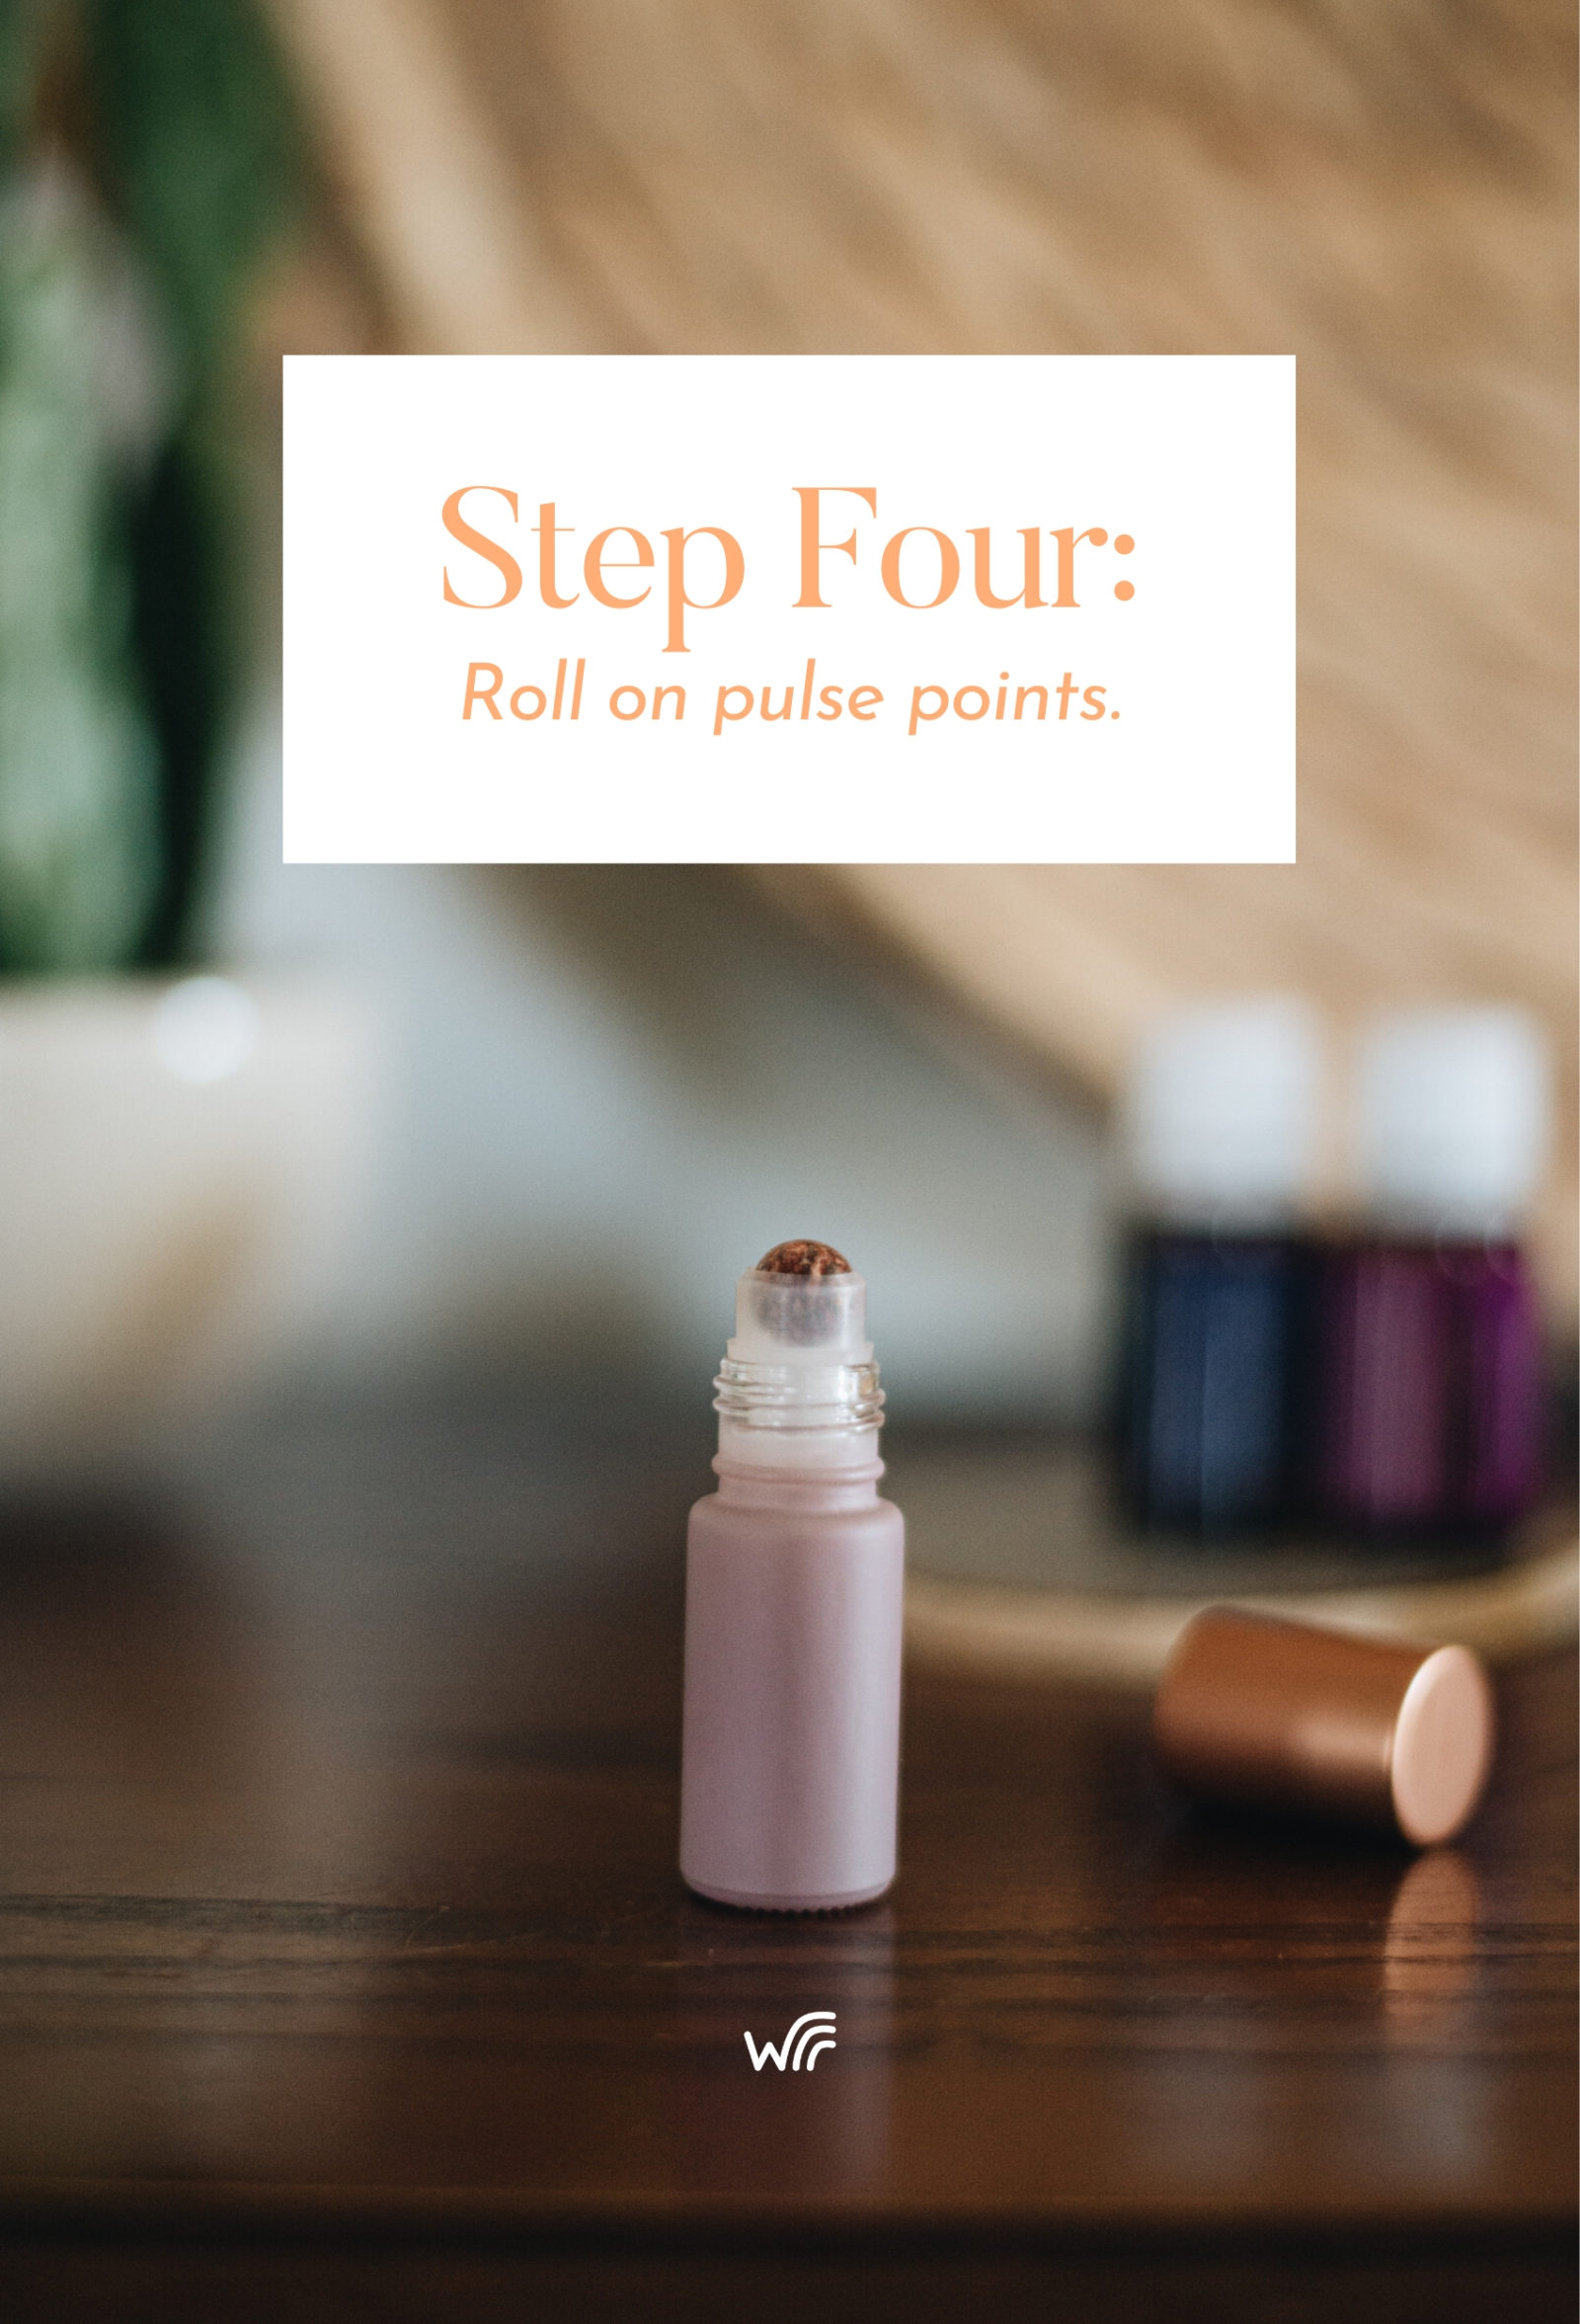 Step Four, roll roller bottle on pulse points Whimsy + Wellness